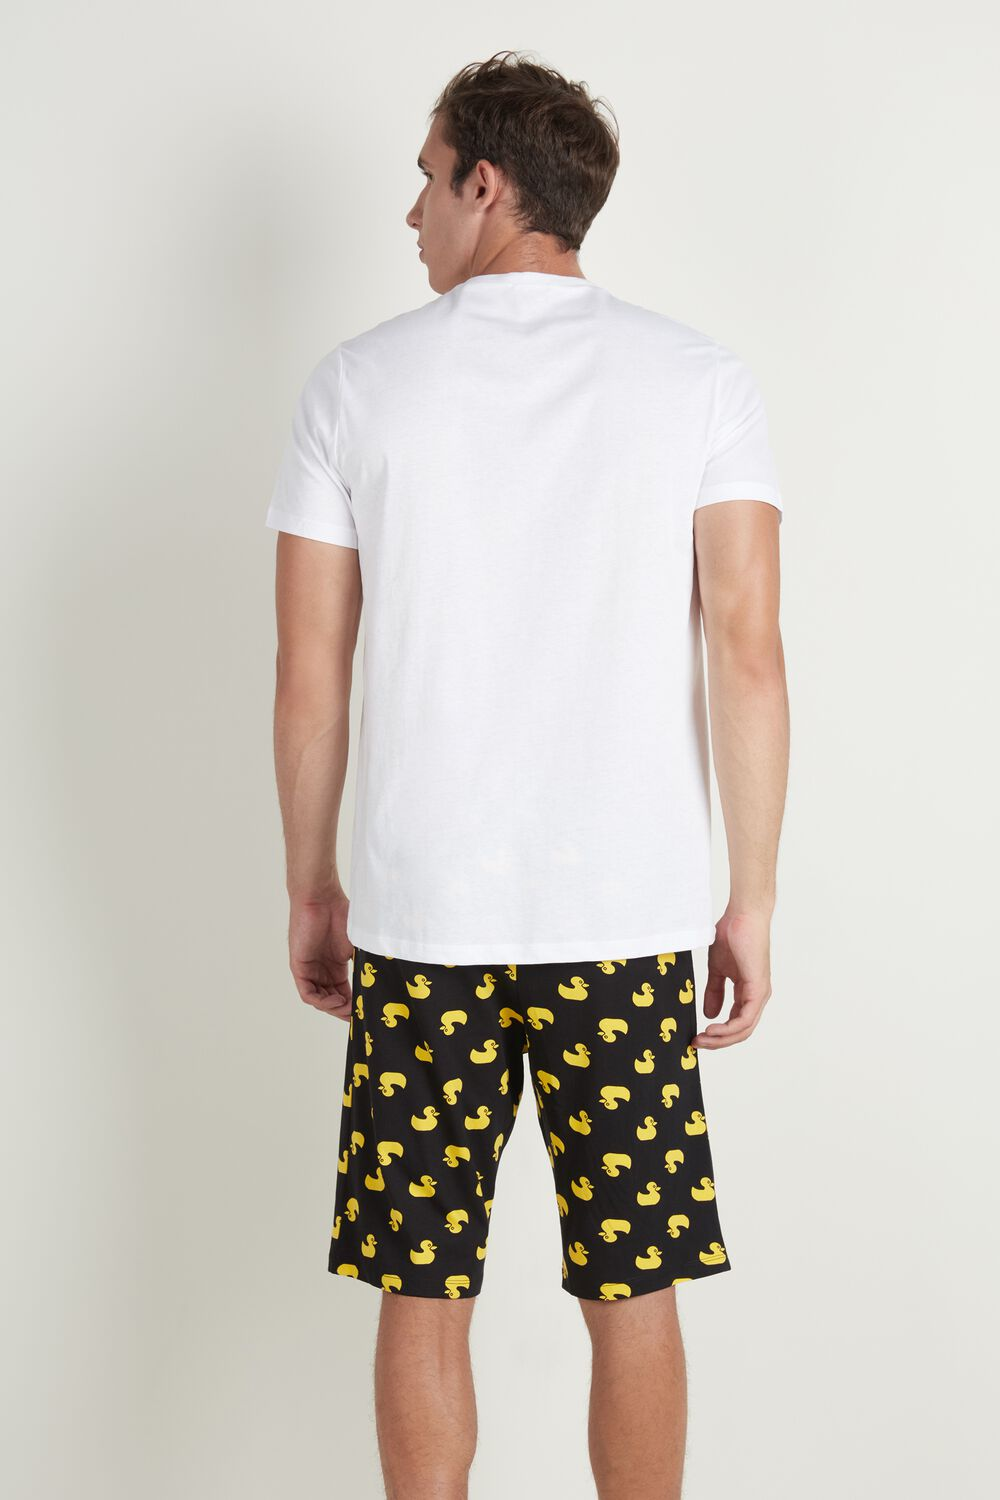 Men's Short Panda Print Pyjamas